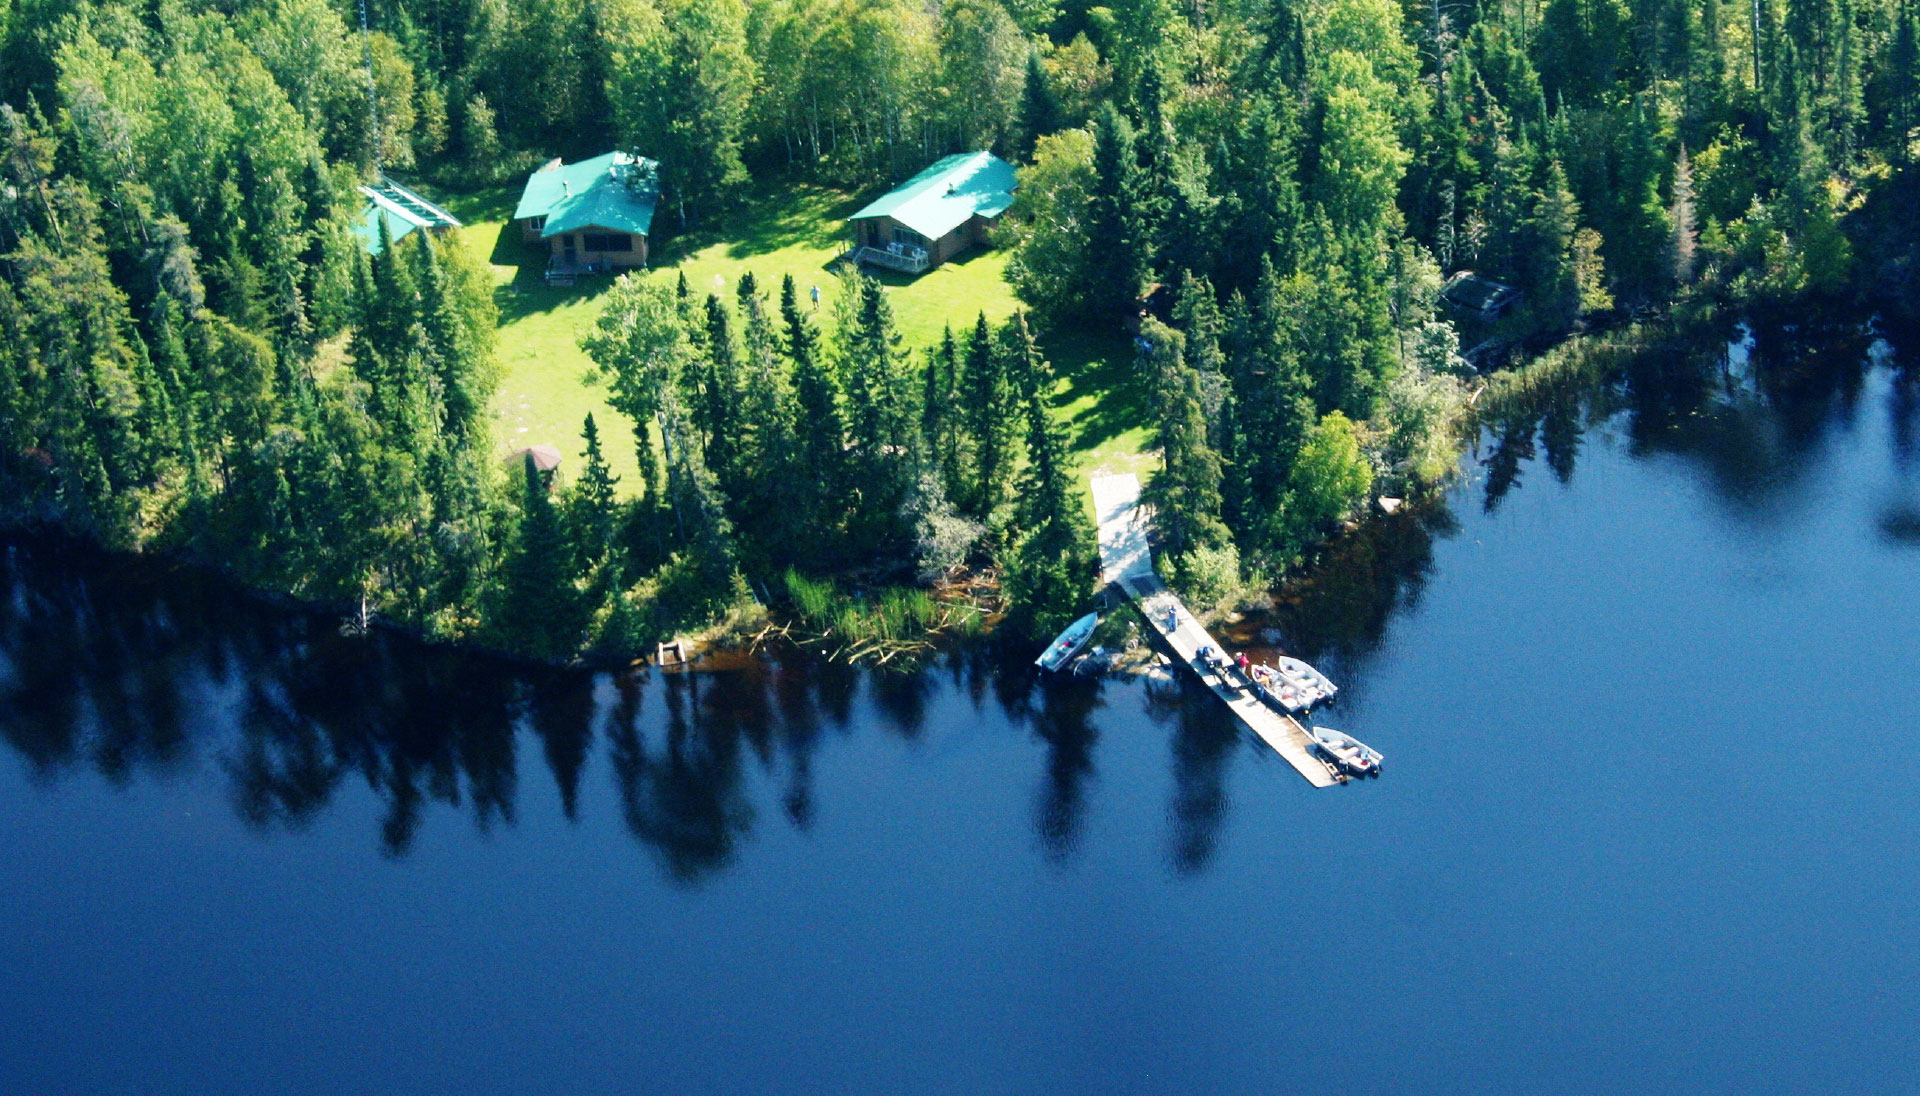 Rowdy Lake Camp Aerial View of Dock and Cabins